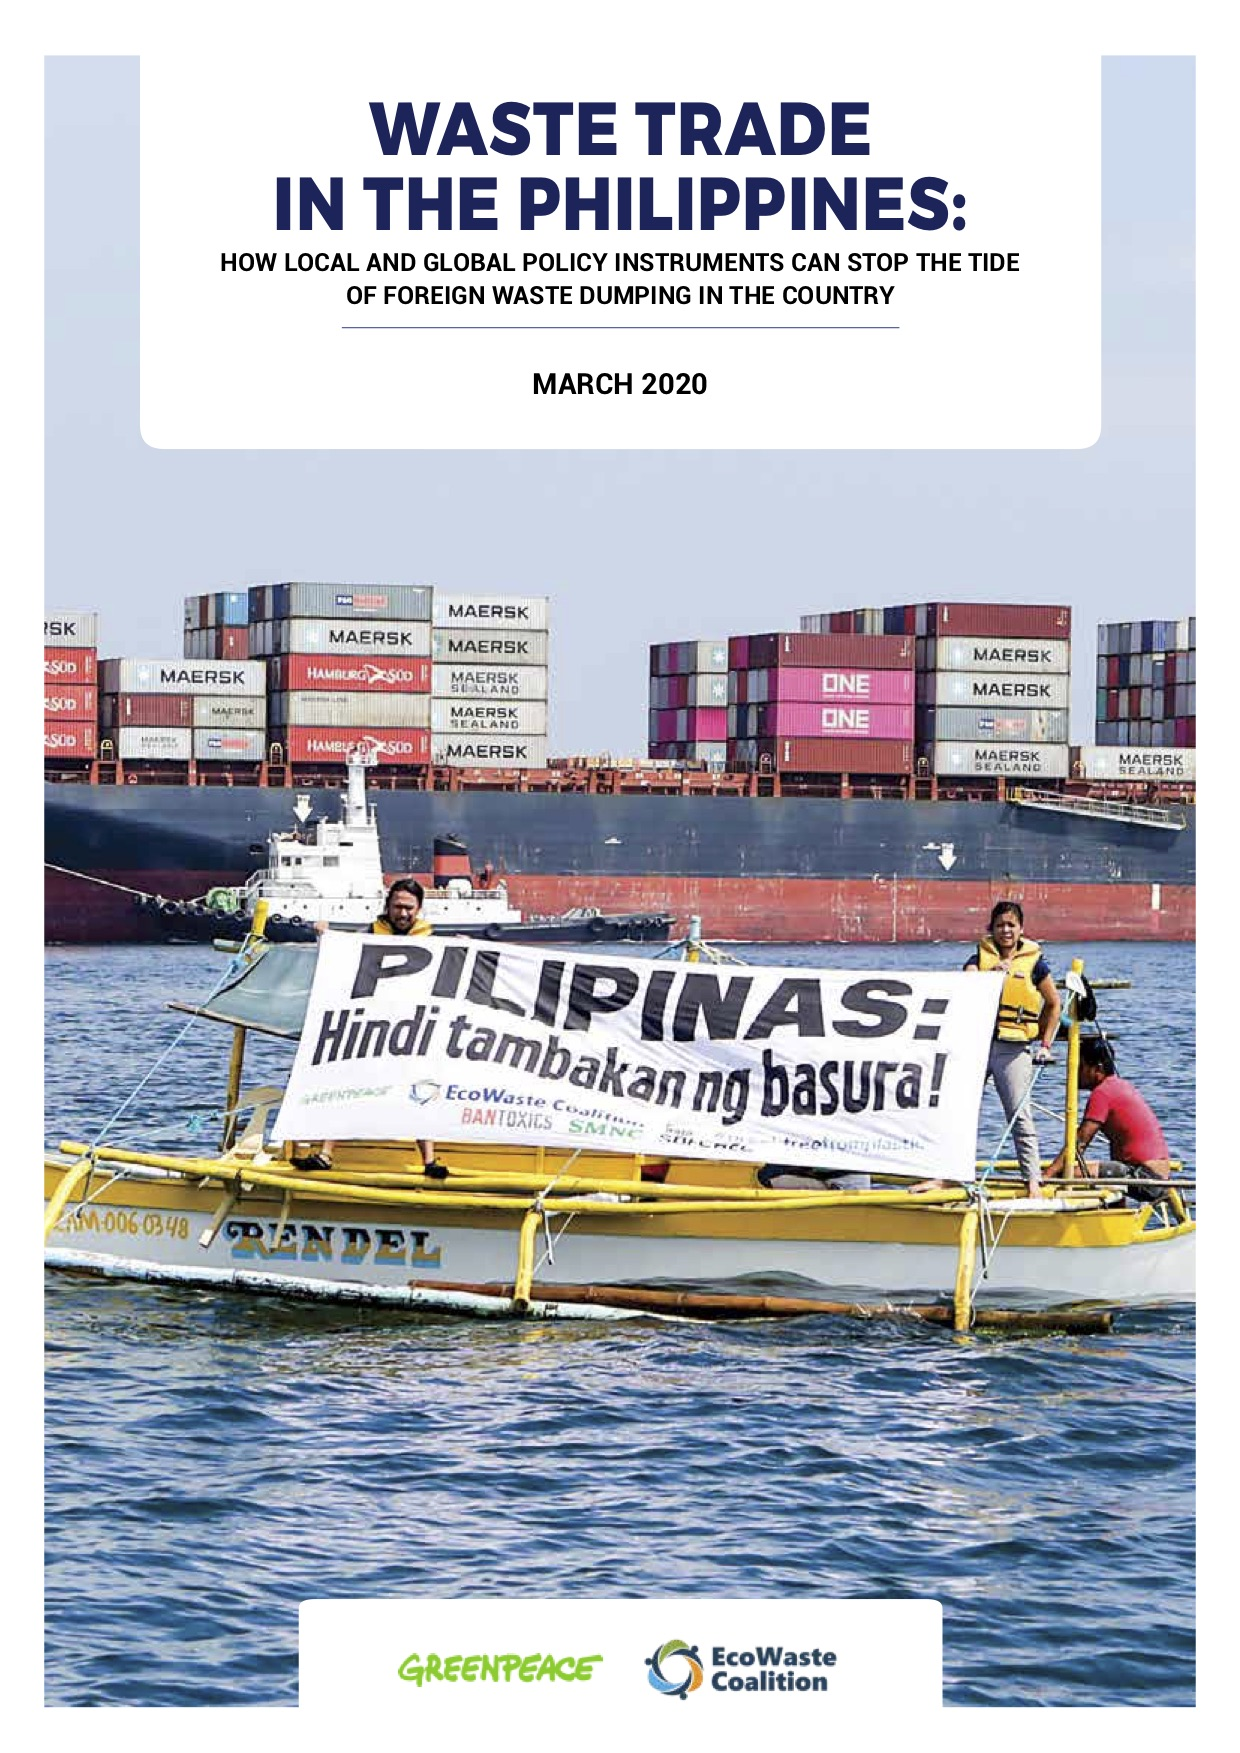 Waste trade and the Philippines: How local and global policy instruments can stop the tide of foreign waste dumping in the country